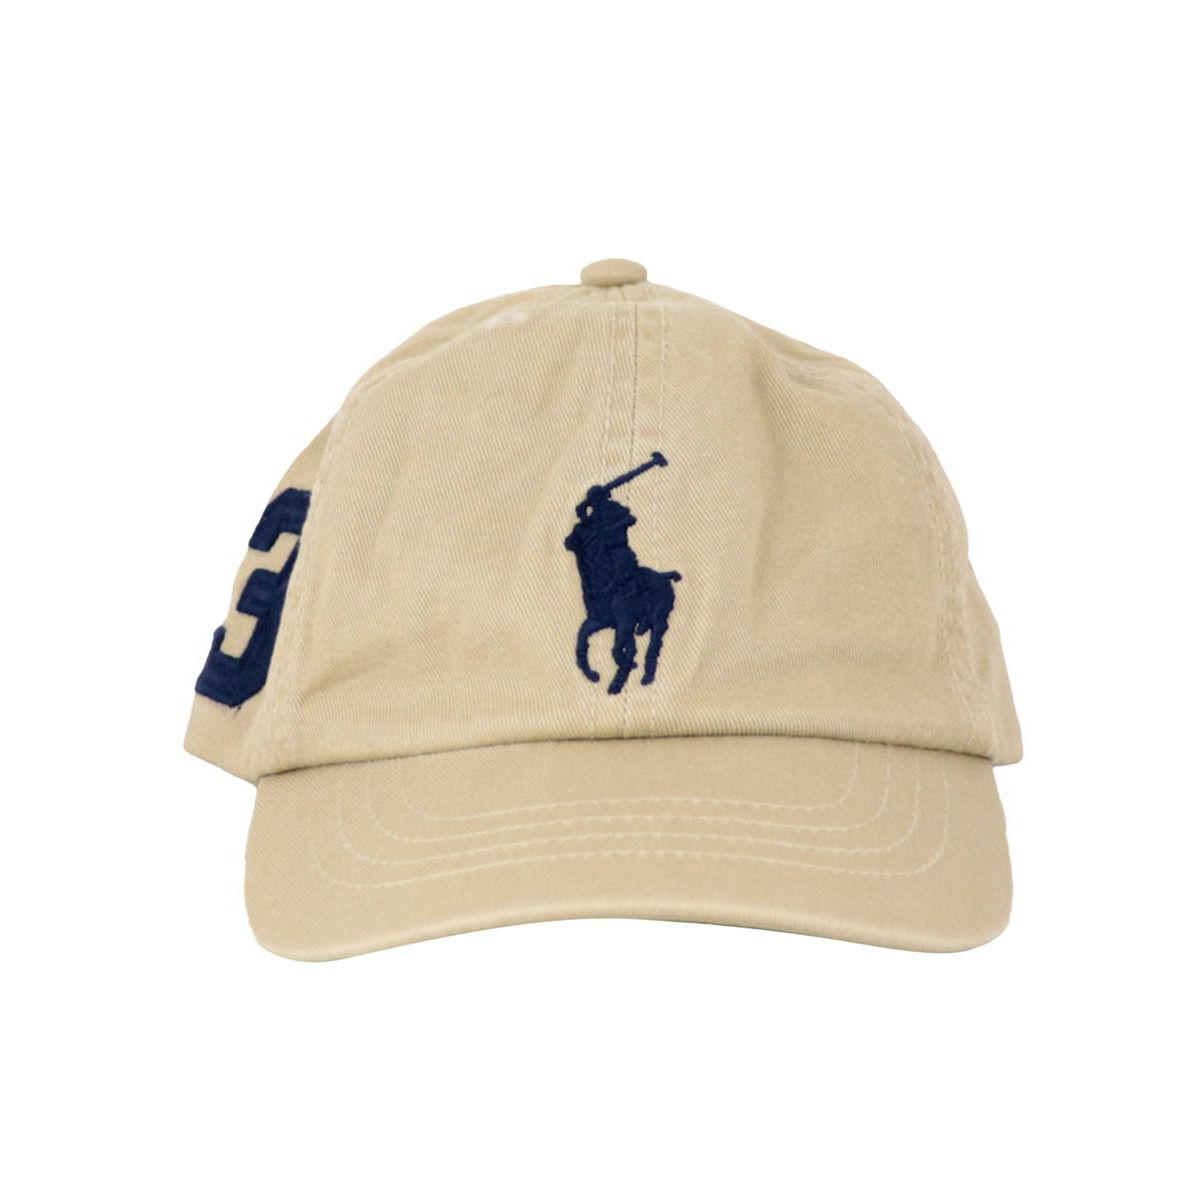 Cotton peaked hat with maxi logo embroidery Kaki Polo Ralph Lauren